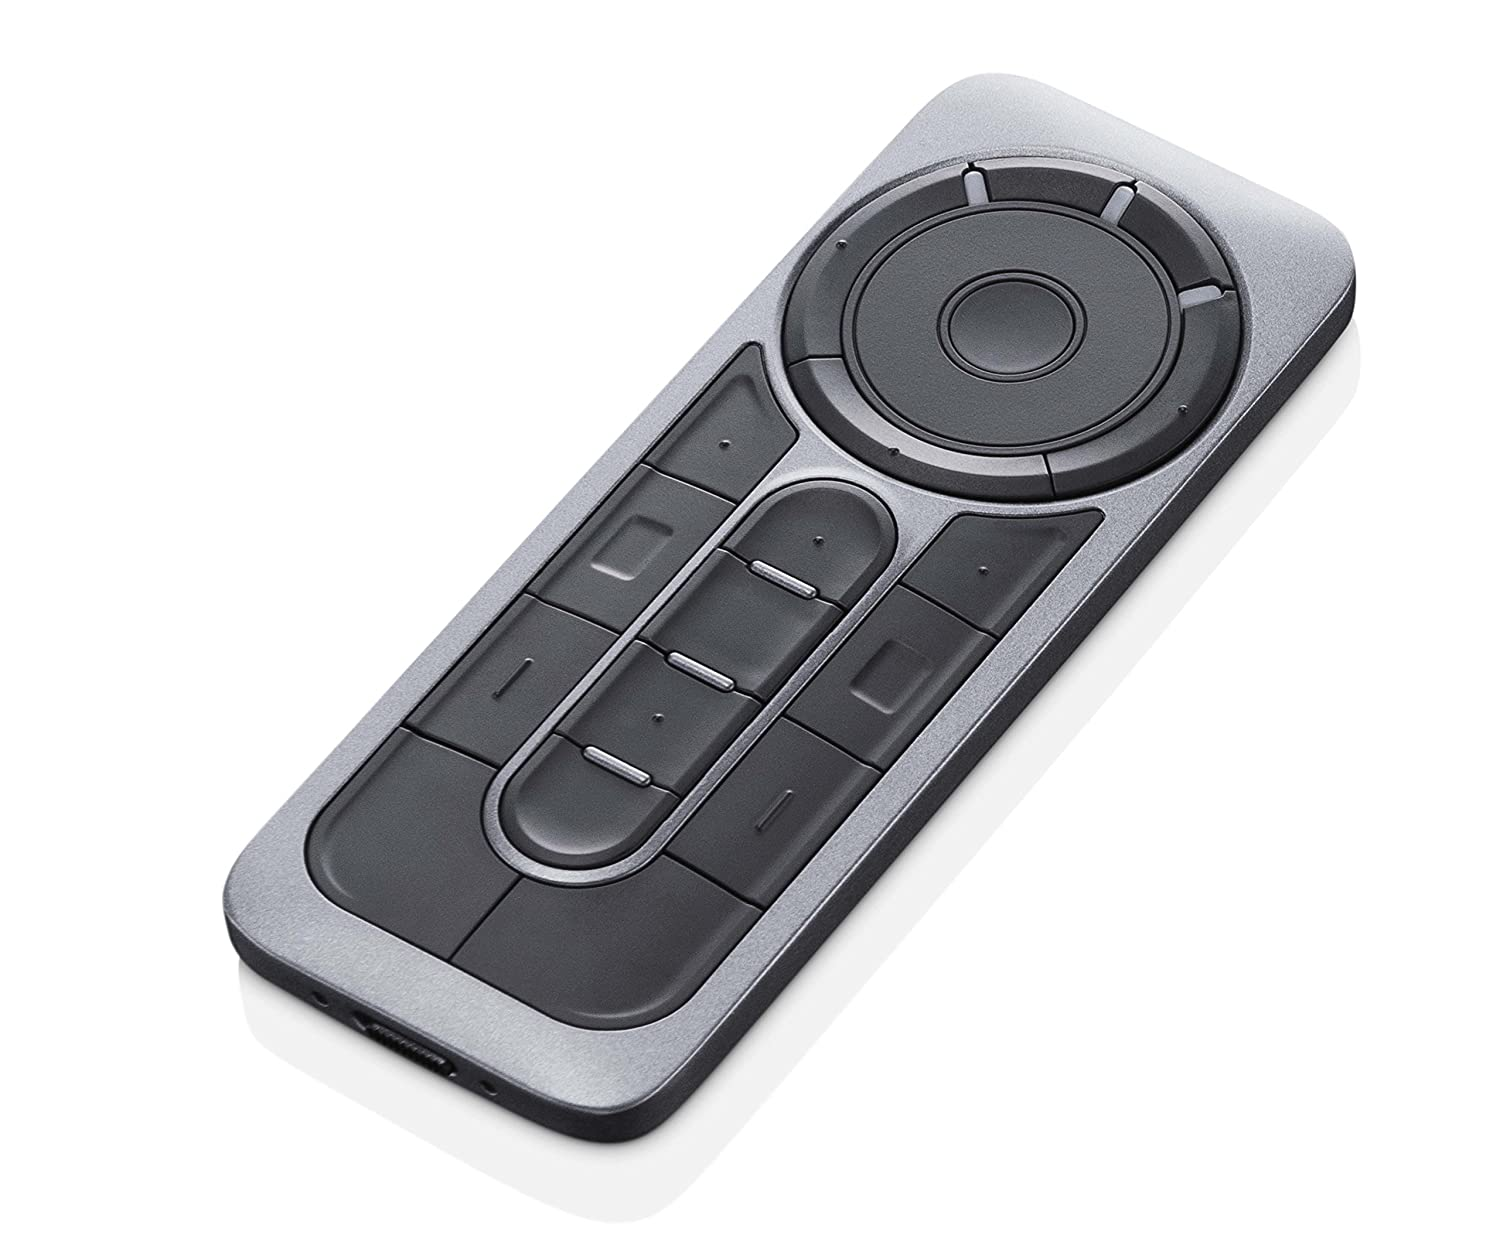 Black//Grey Wacom ACK-411050 Press Buttons Remote Control